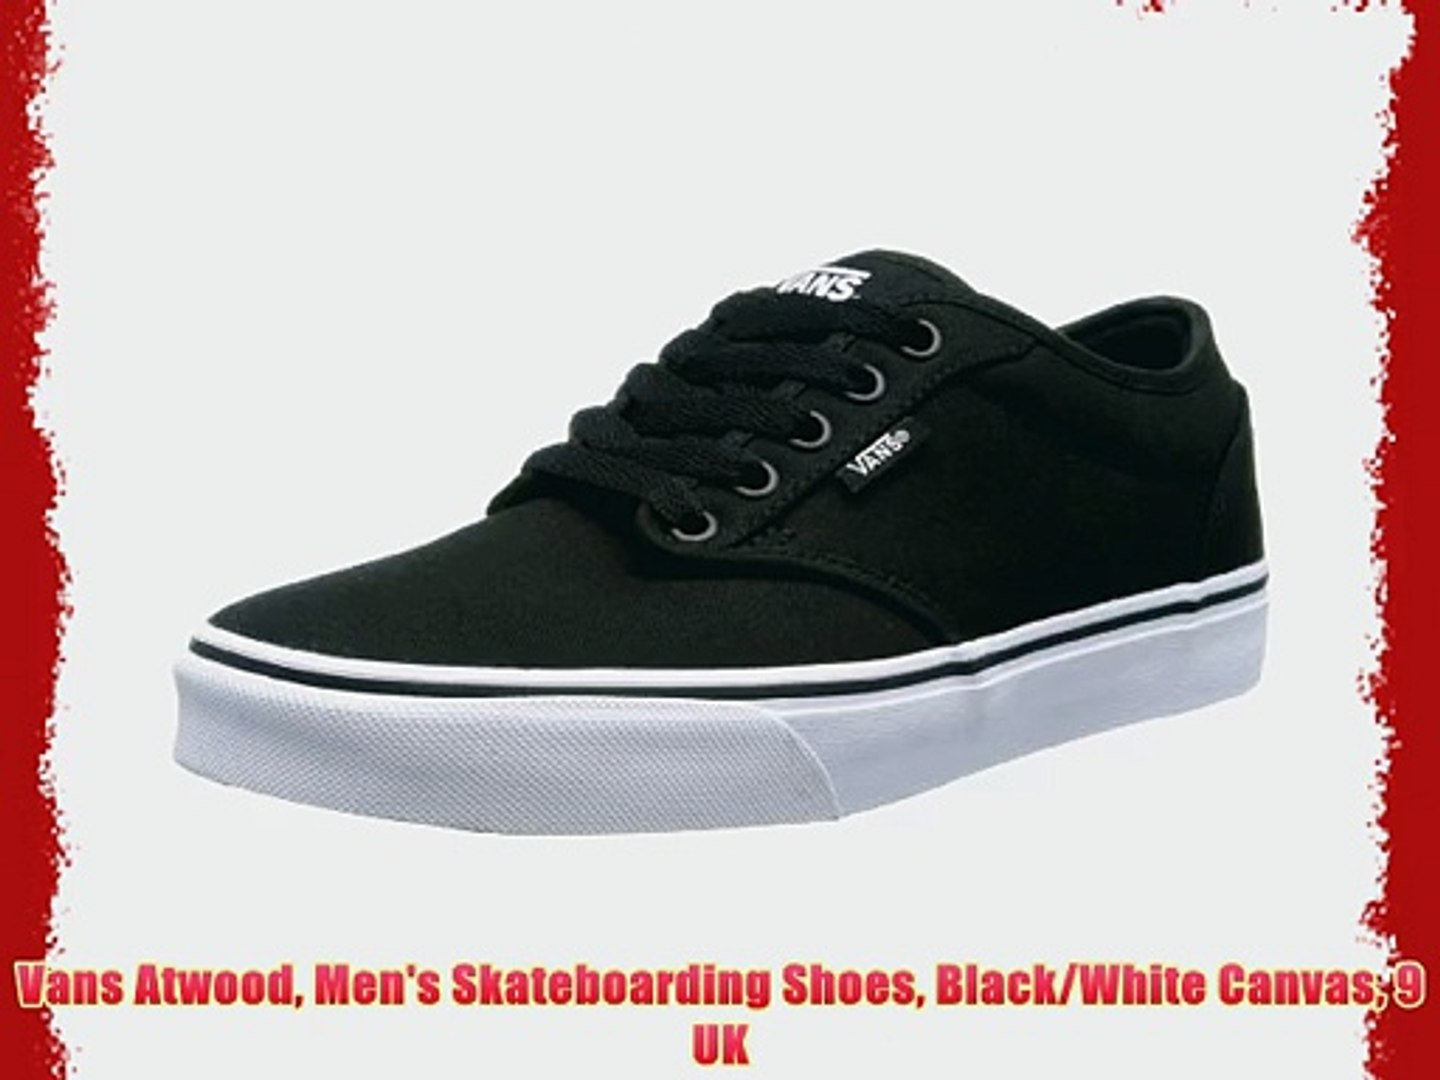 Vans Atwood Men's Skateboarding Shoes BlackWhite Canvas 9 UK